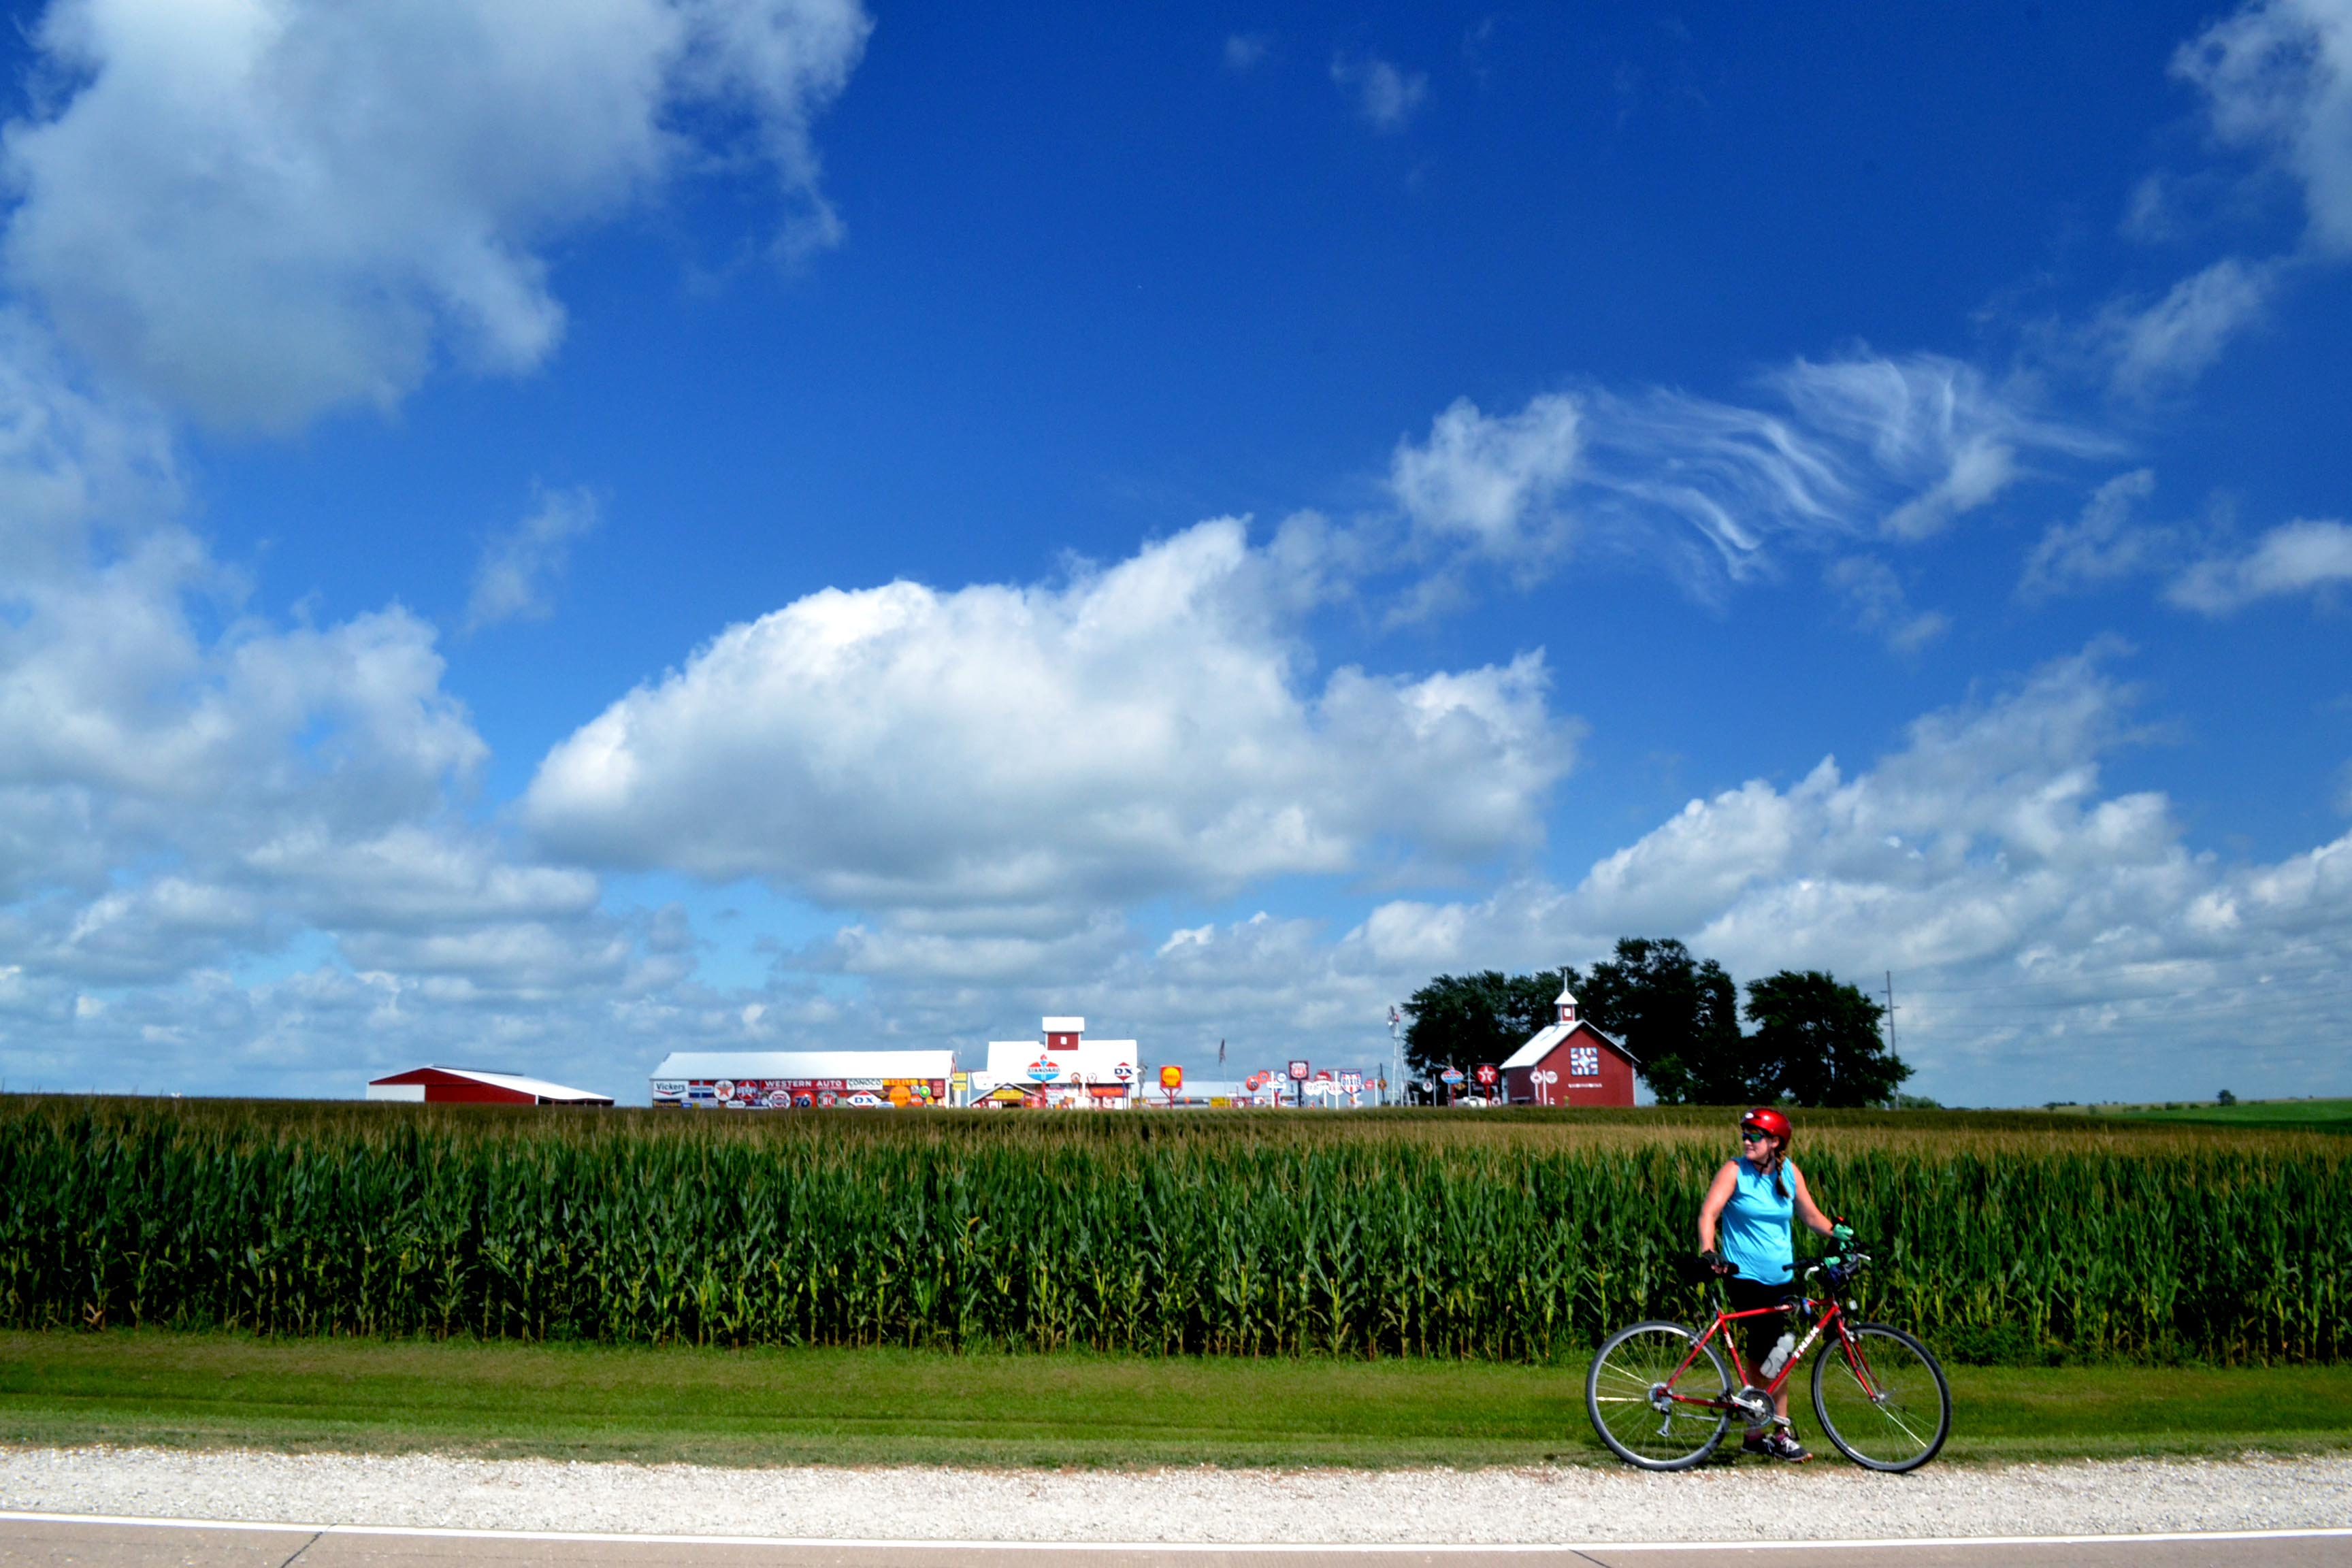 RAGBRAI - ode to a fly-over state